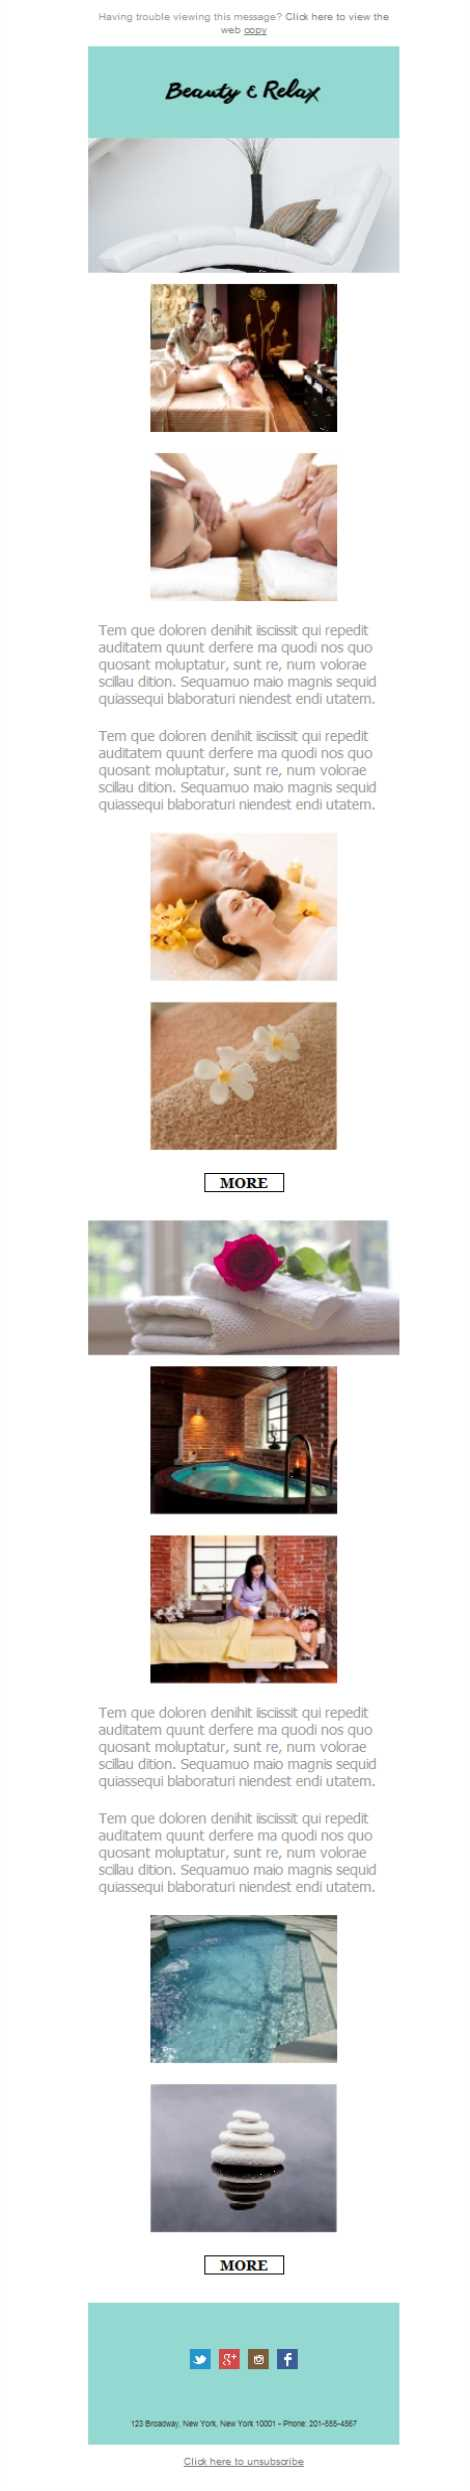 Templates Emailing Spa Beauty Relaxation Sarbacane